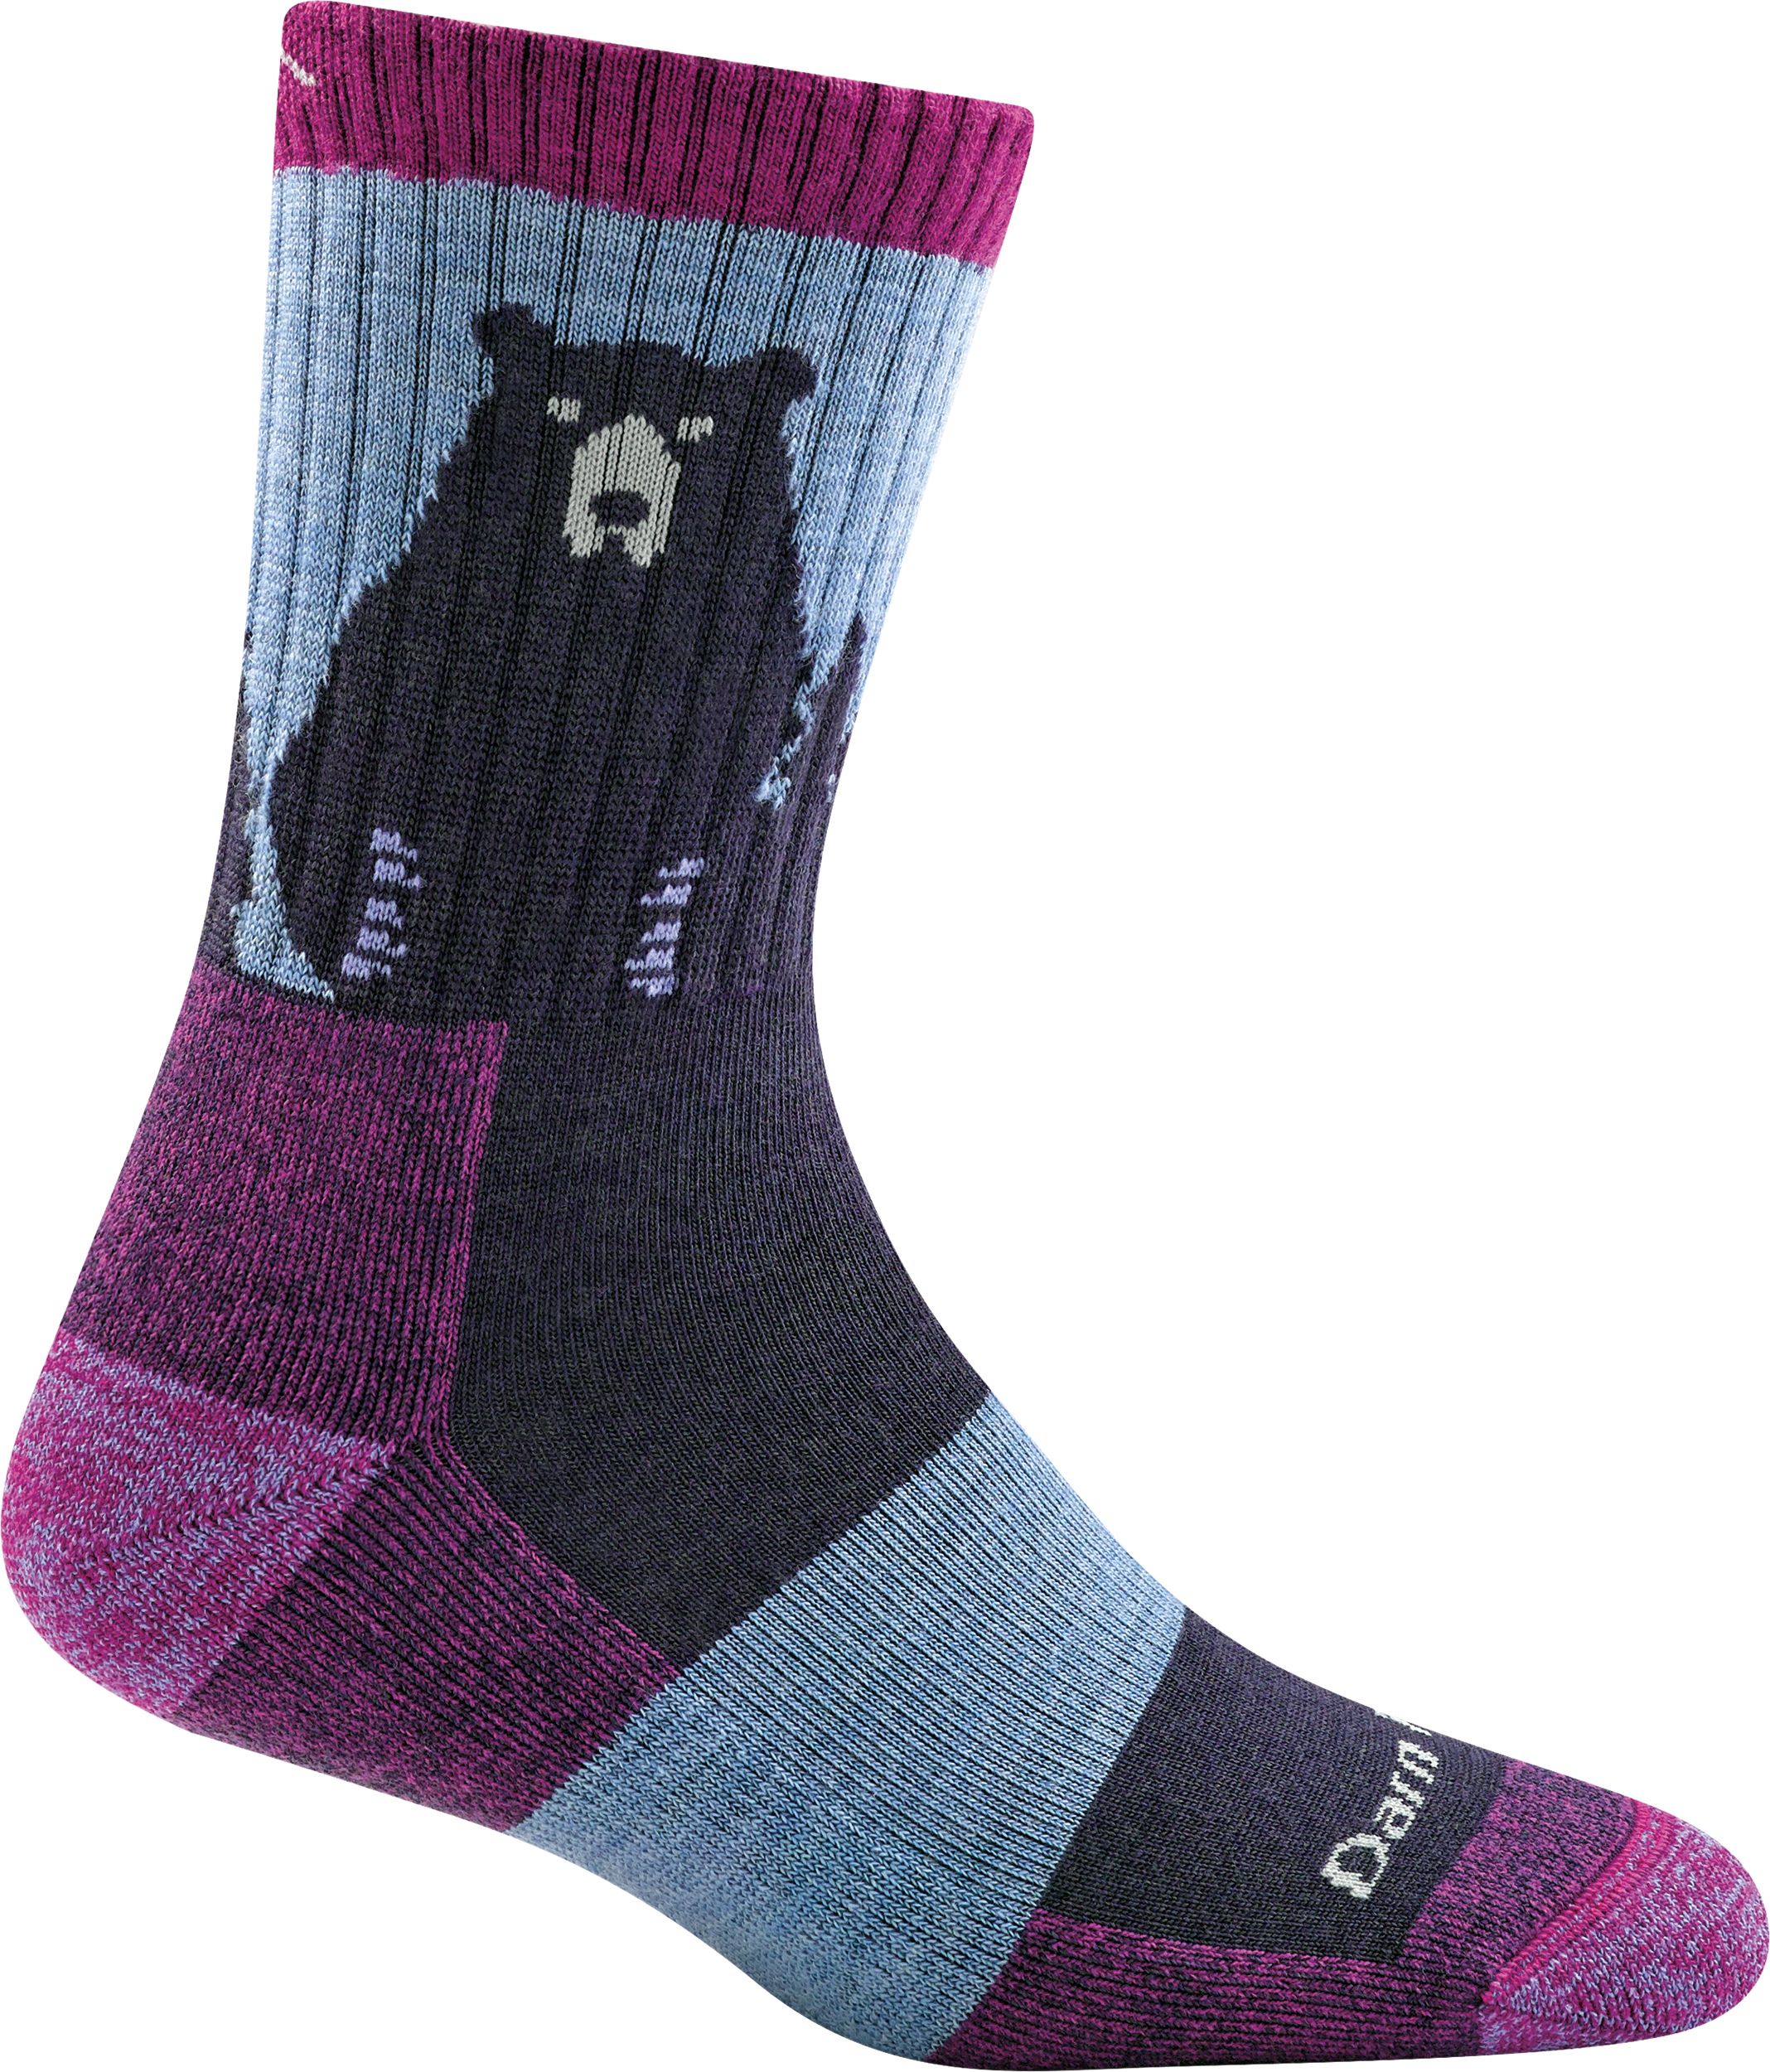 Casual socks | MEC